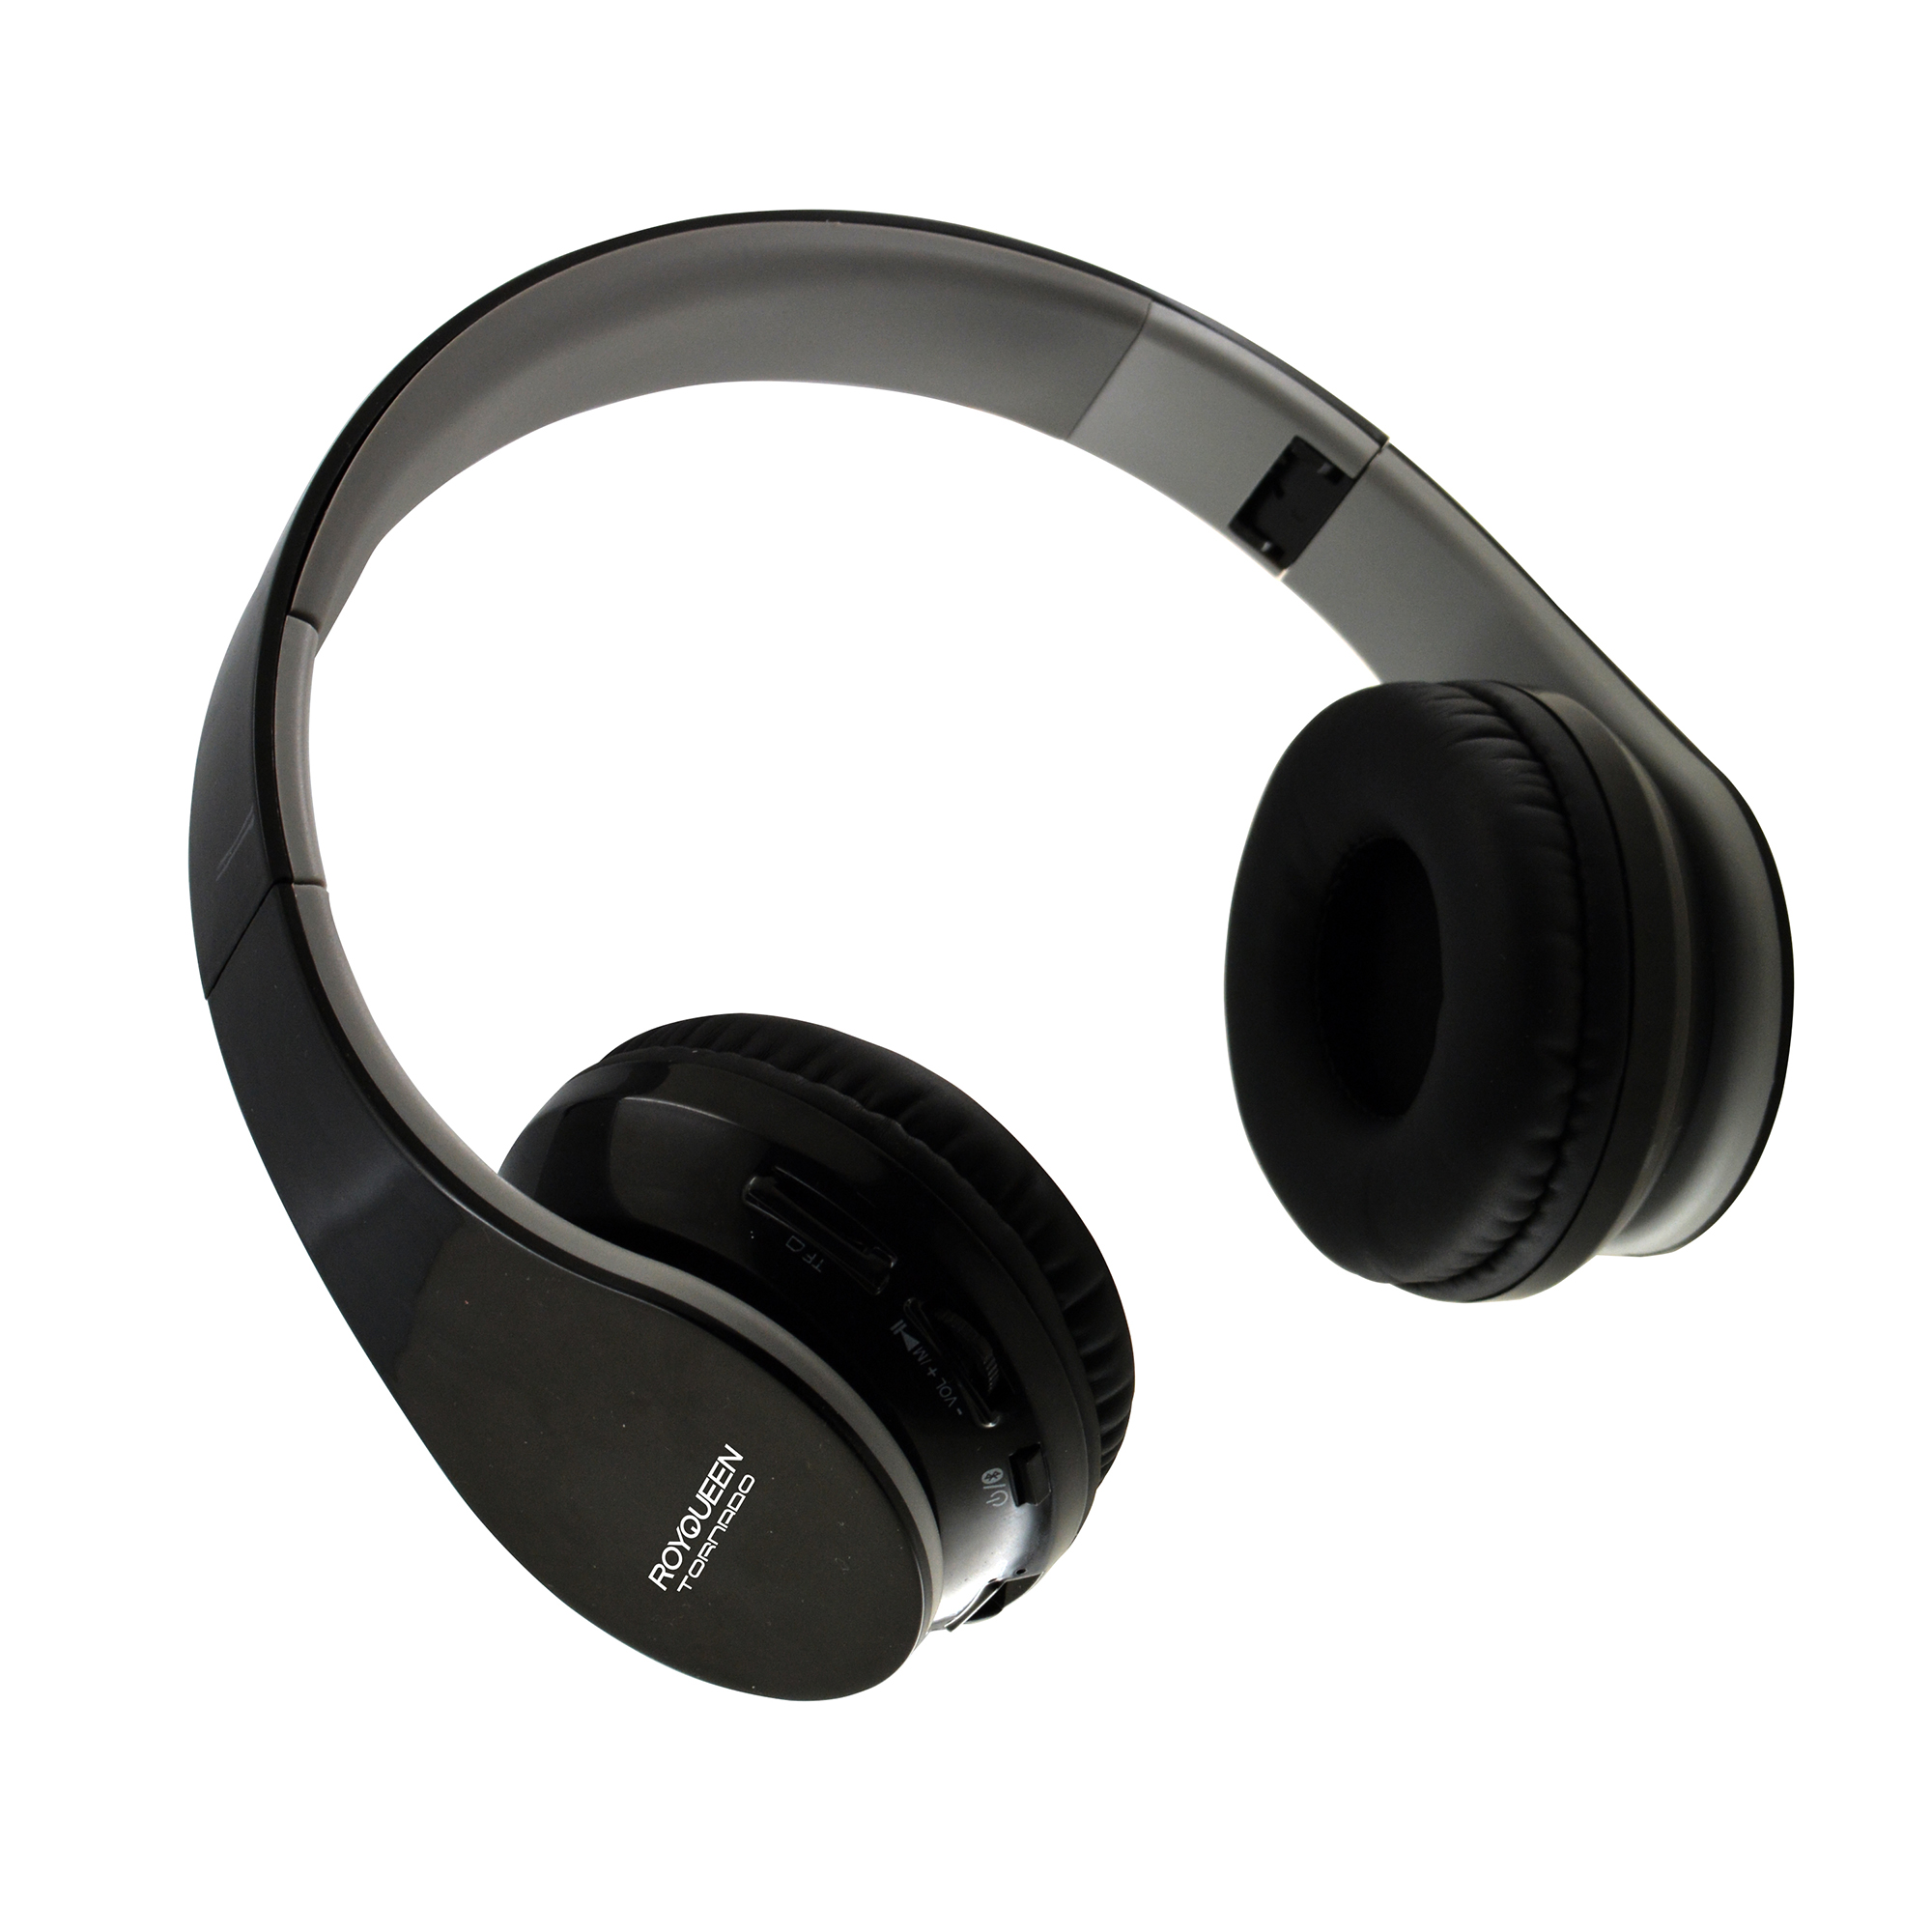 ROYQUEEN TORNADO BLUETOOTH HEADPHONE image here